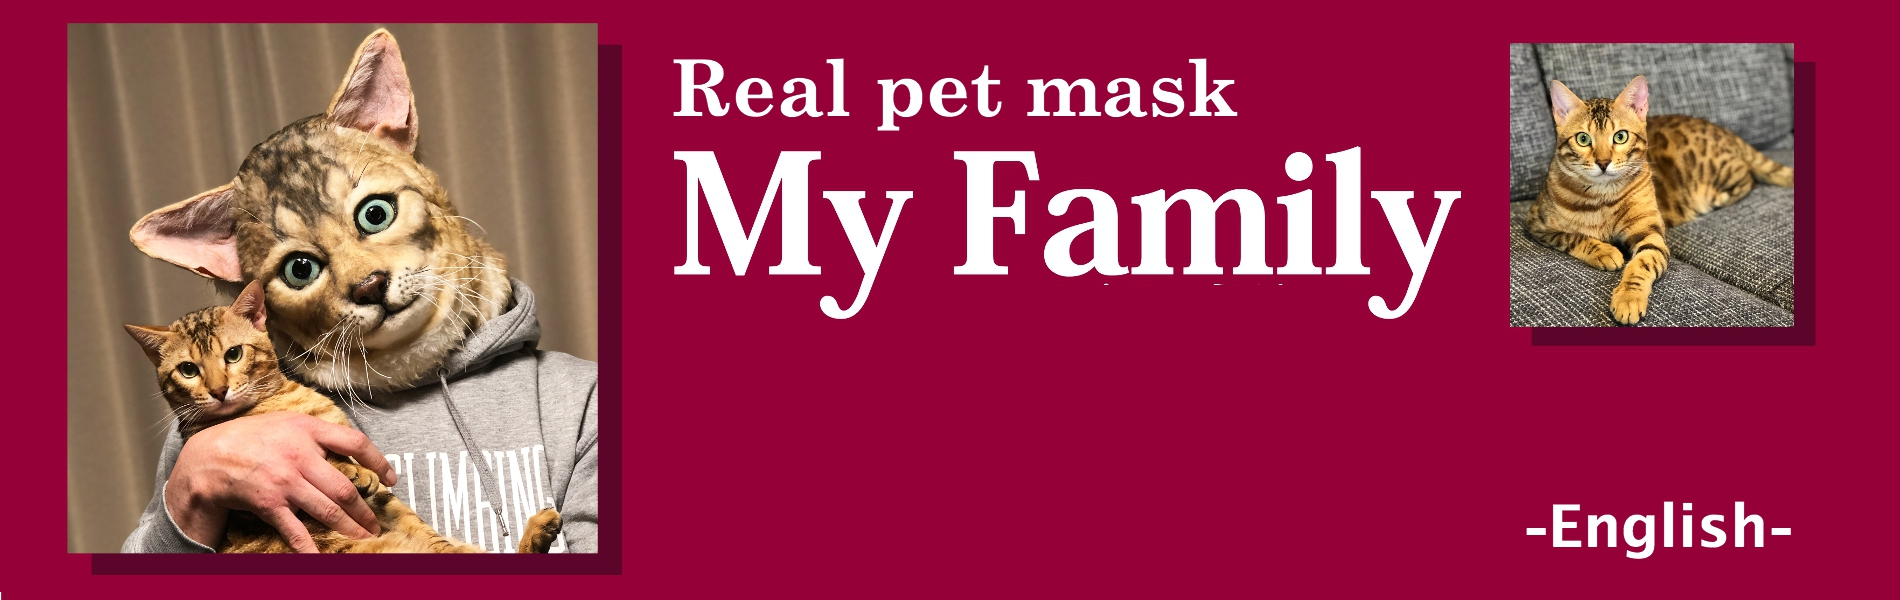 real pet mask『My Family』